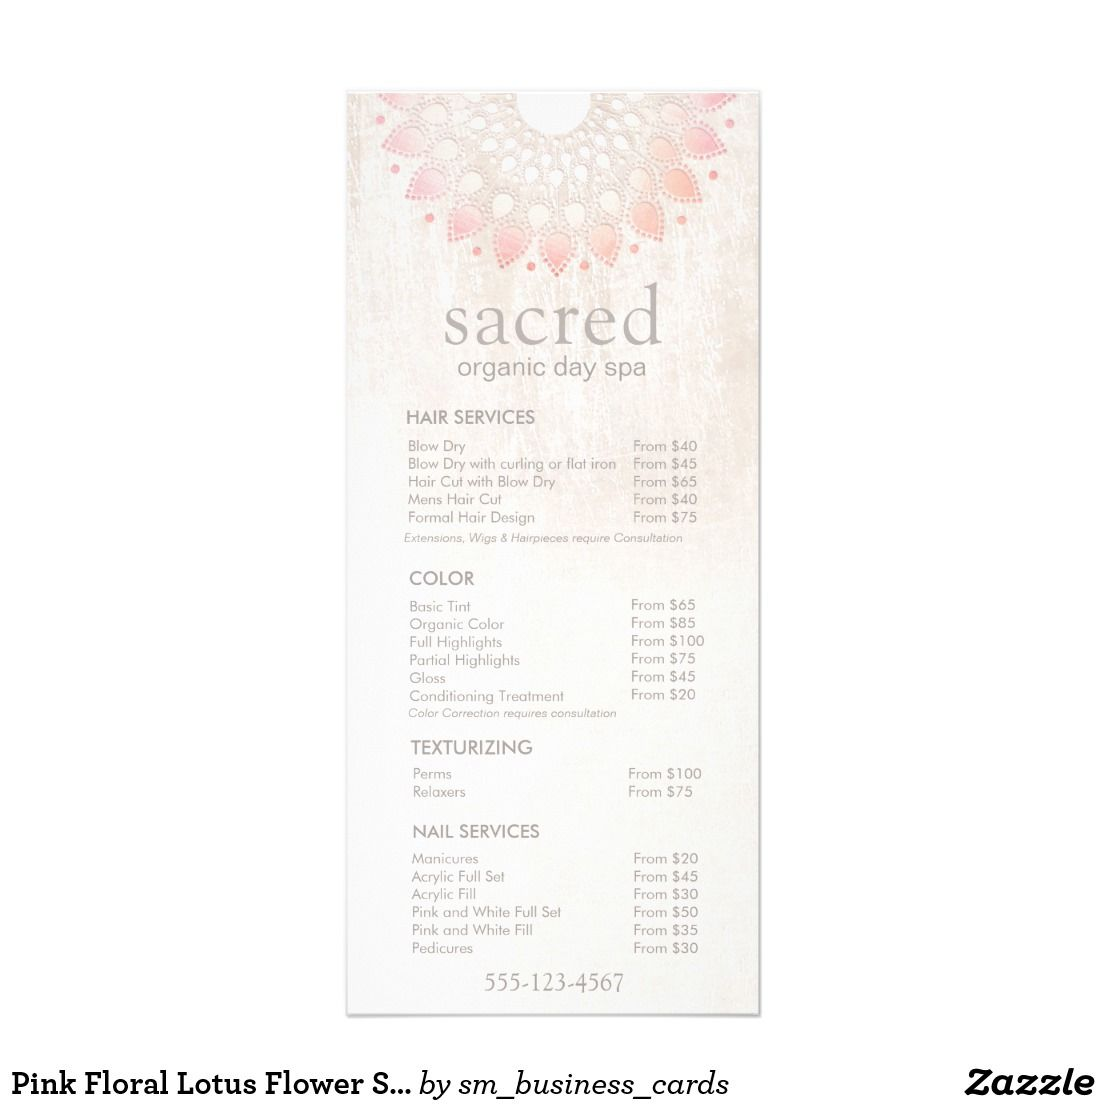 Pink Floral Lotus Flower Spa Salon Price List Menu Fashion And